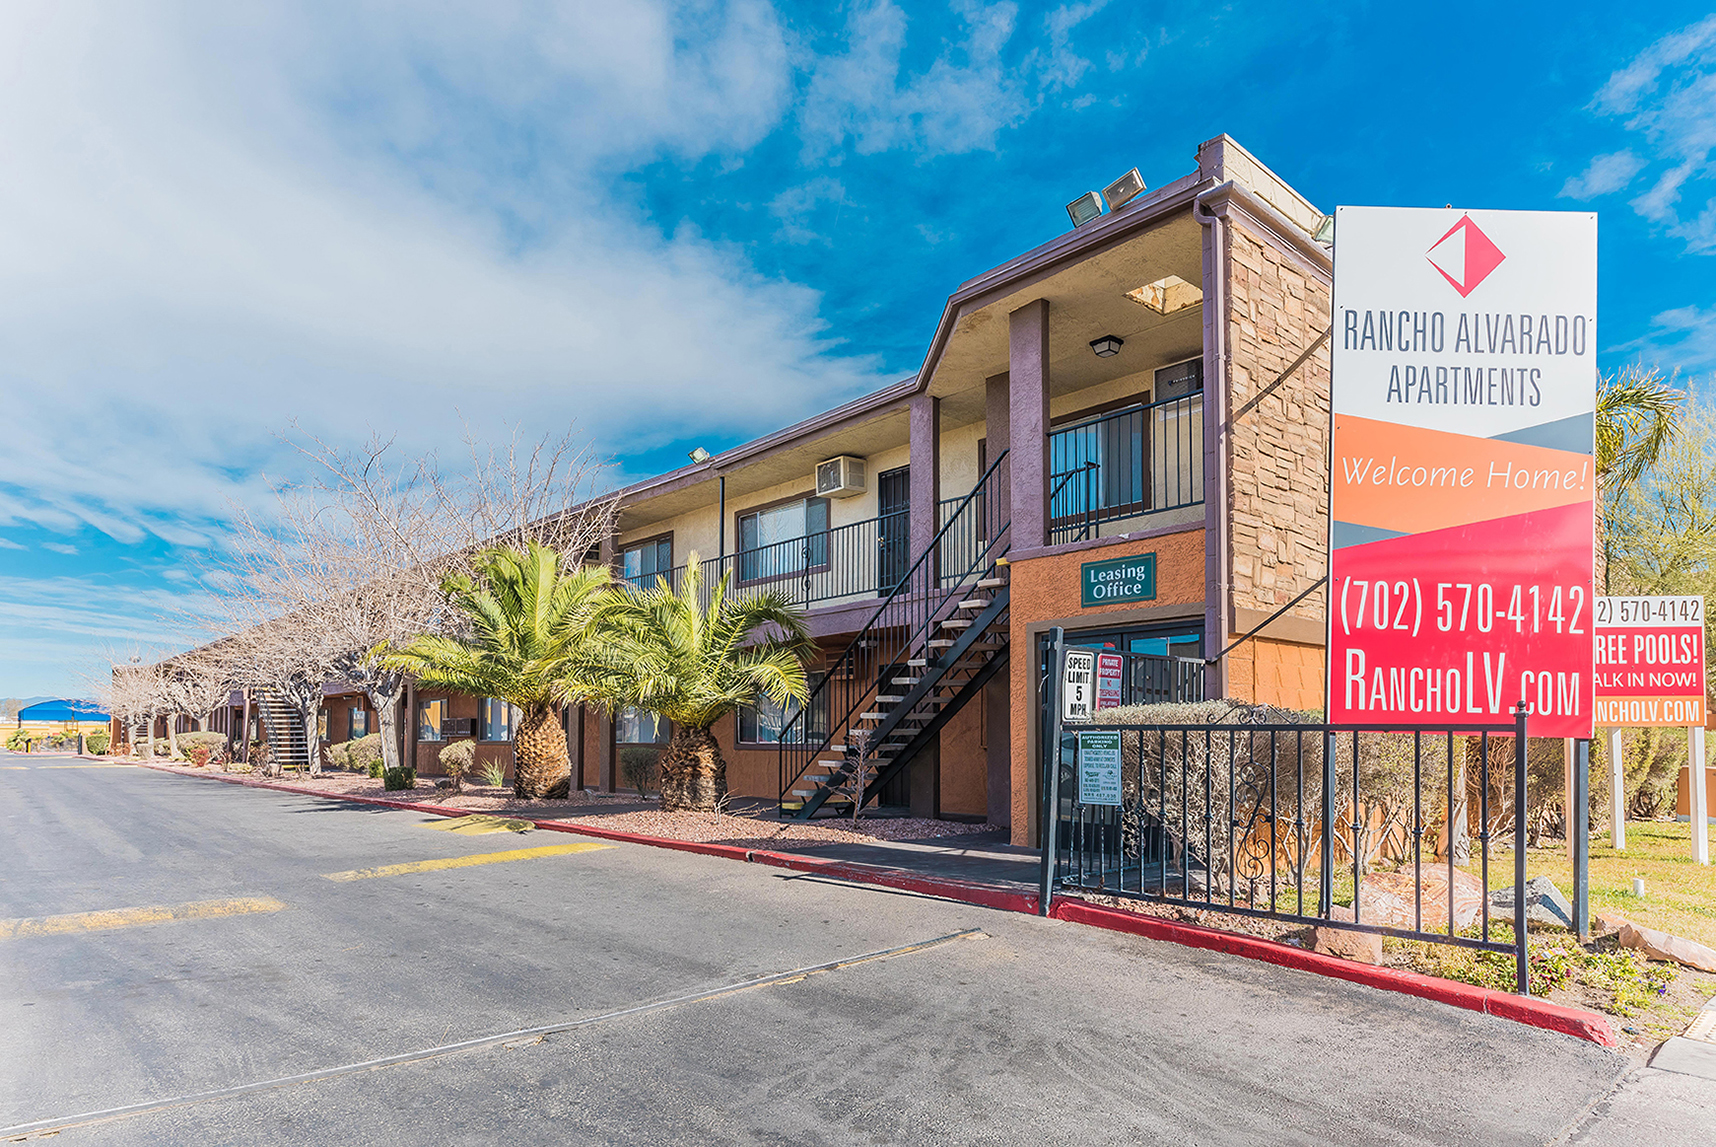 Rancho Alvarado Apartments rental